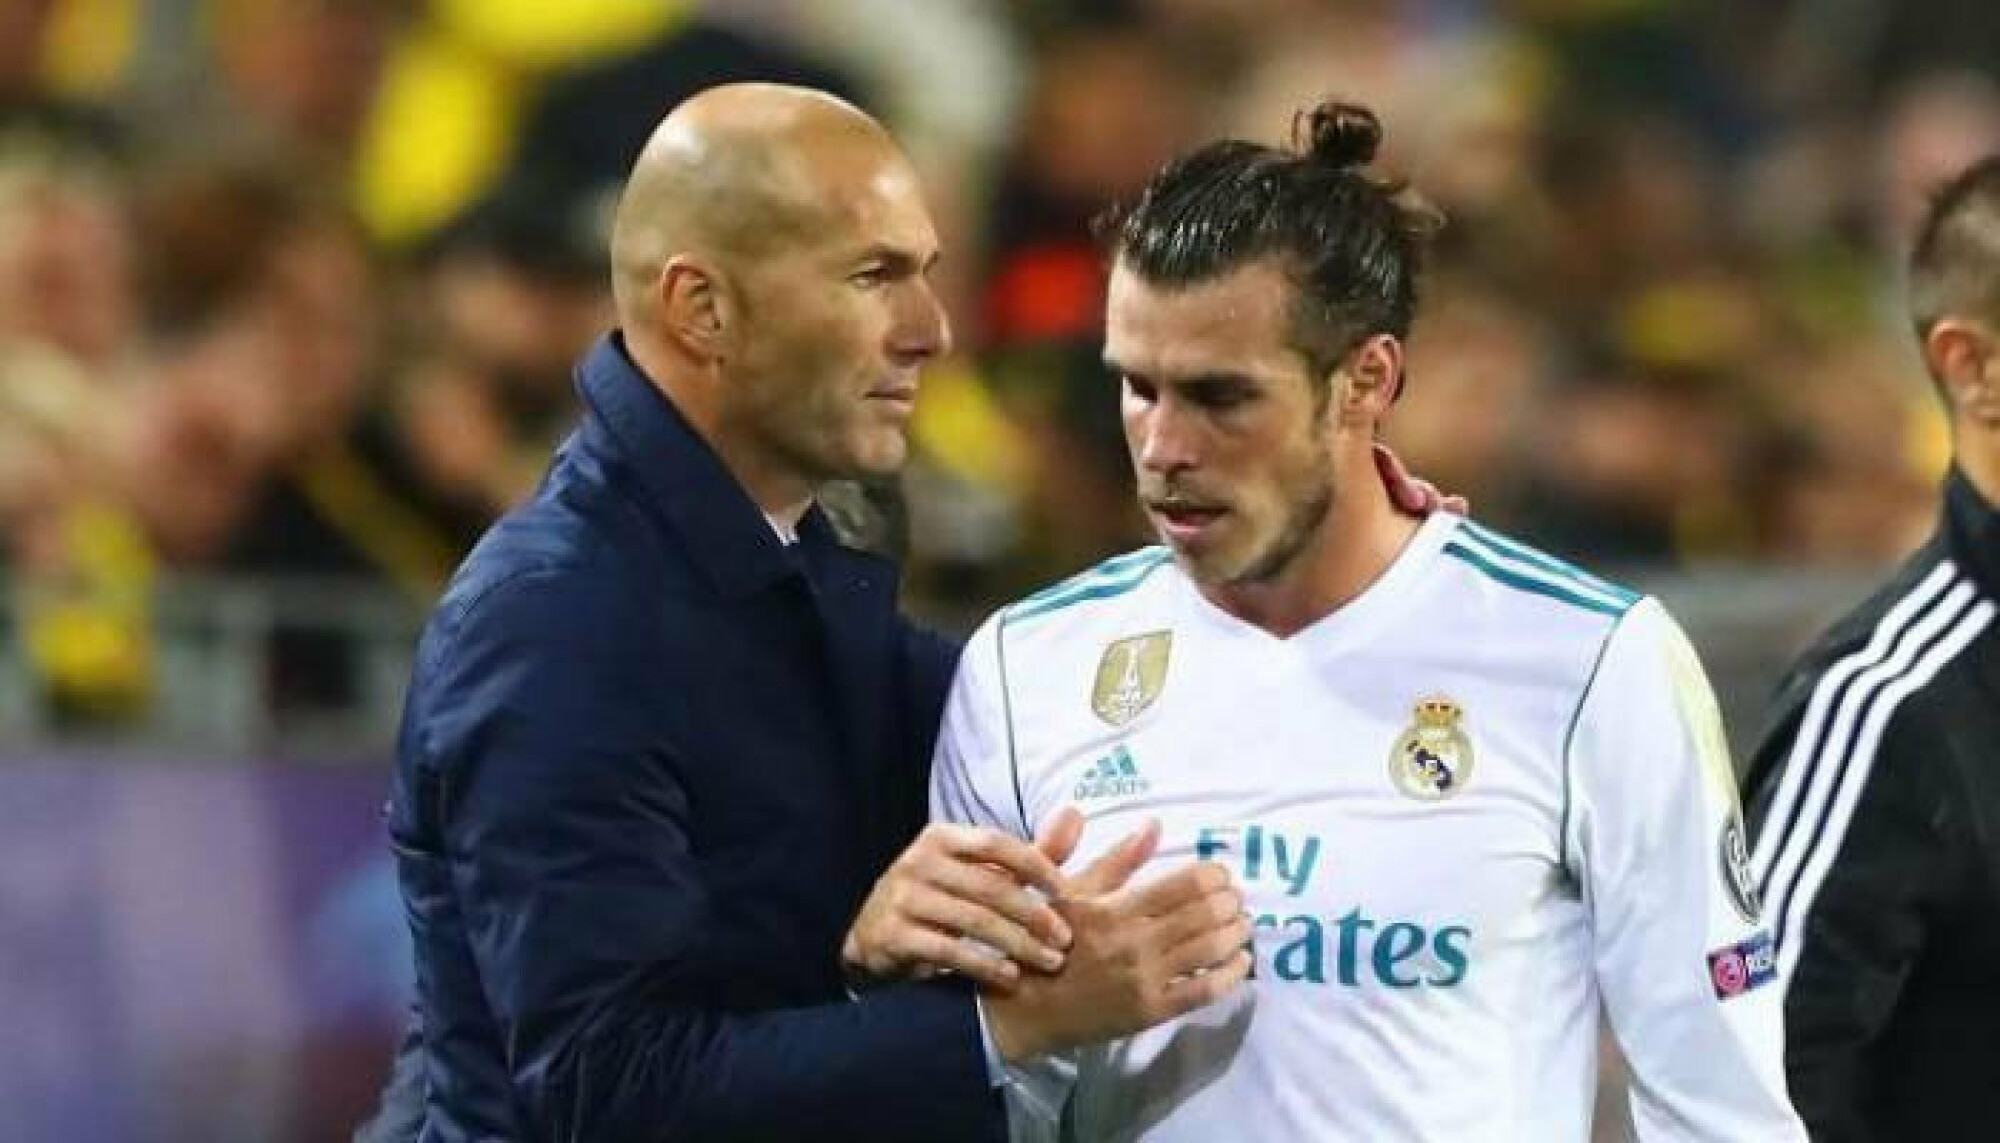 Everything you need to know about the Gareth Bale-Zinedine Zidane row